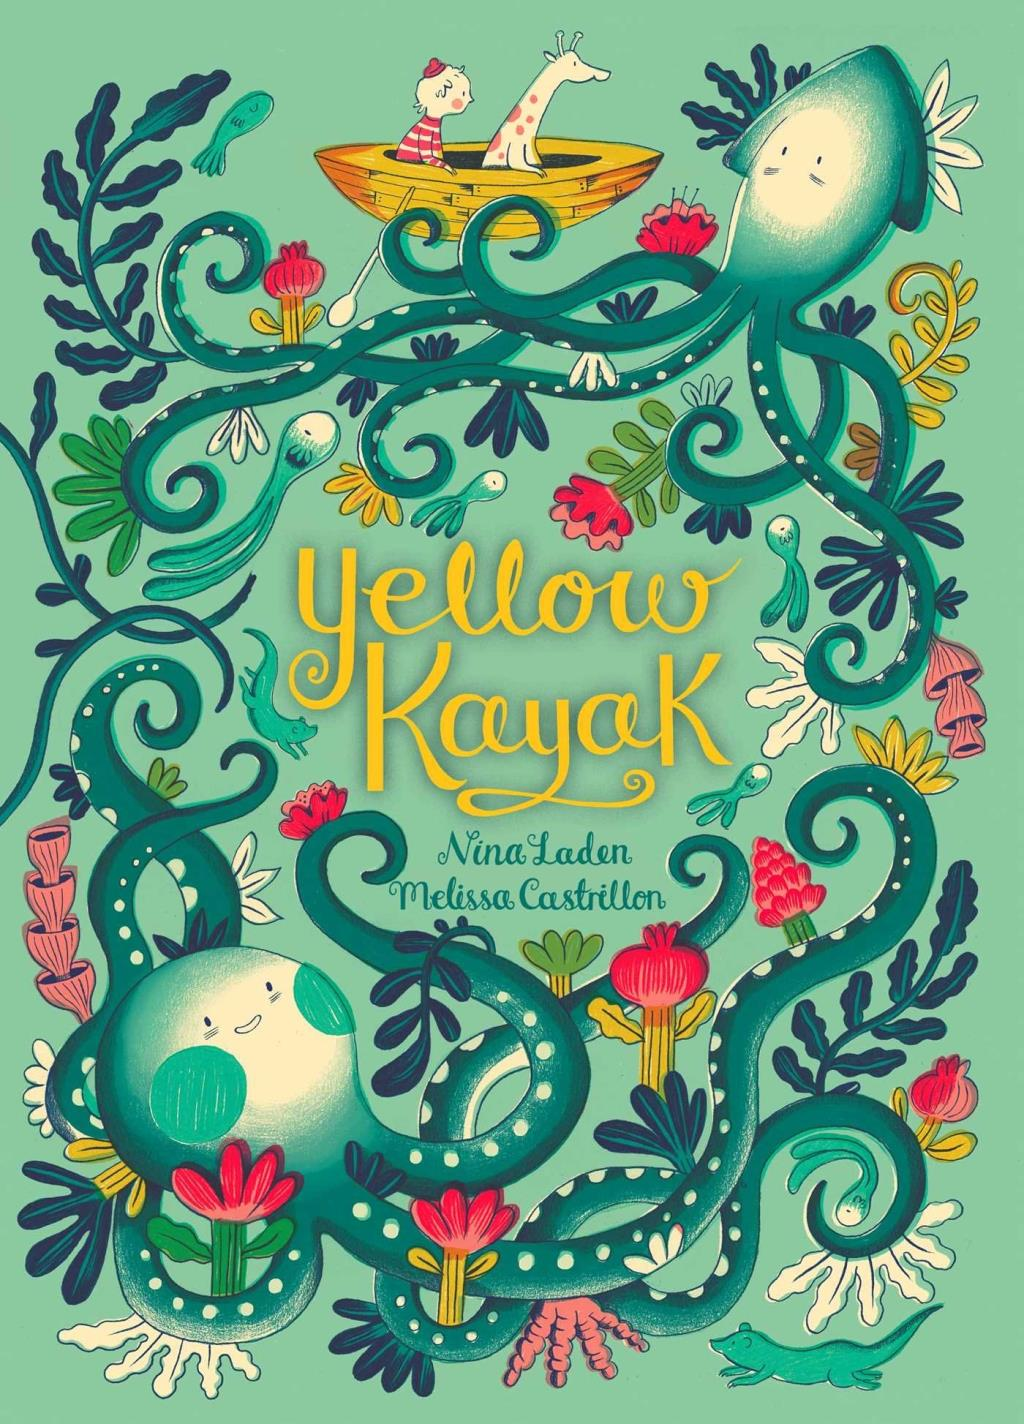 Yellow Kayak by Nina Laden - Simon & Schuster